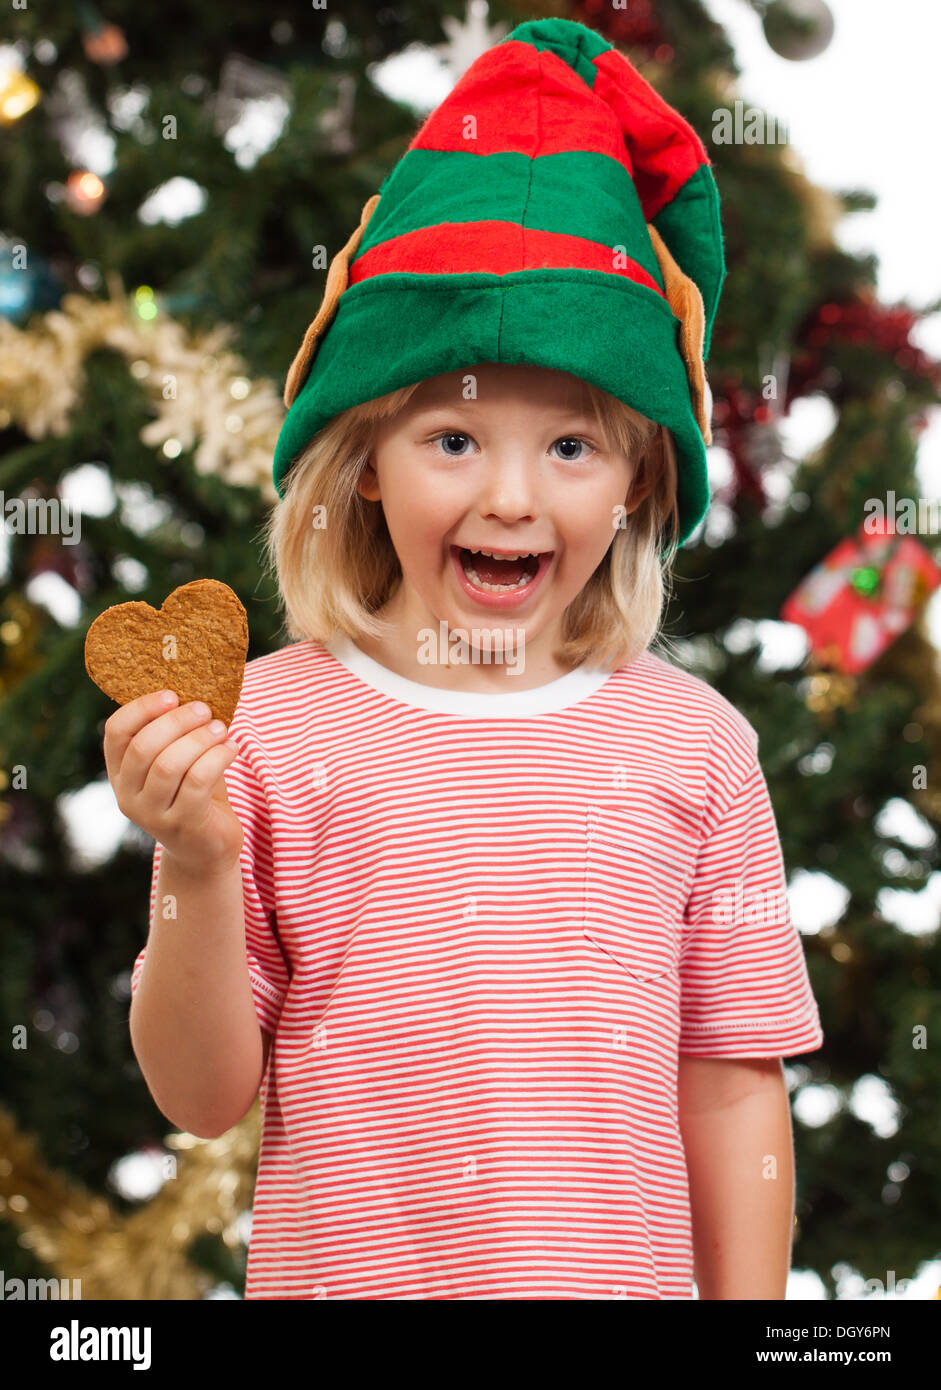 A cute excited boy dressed as Santa's helper is holding gingerbread cookie in front of a Christmas tree. - Stock Image